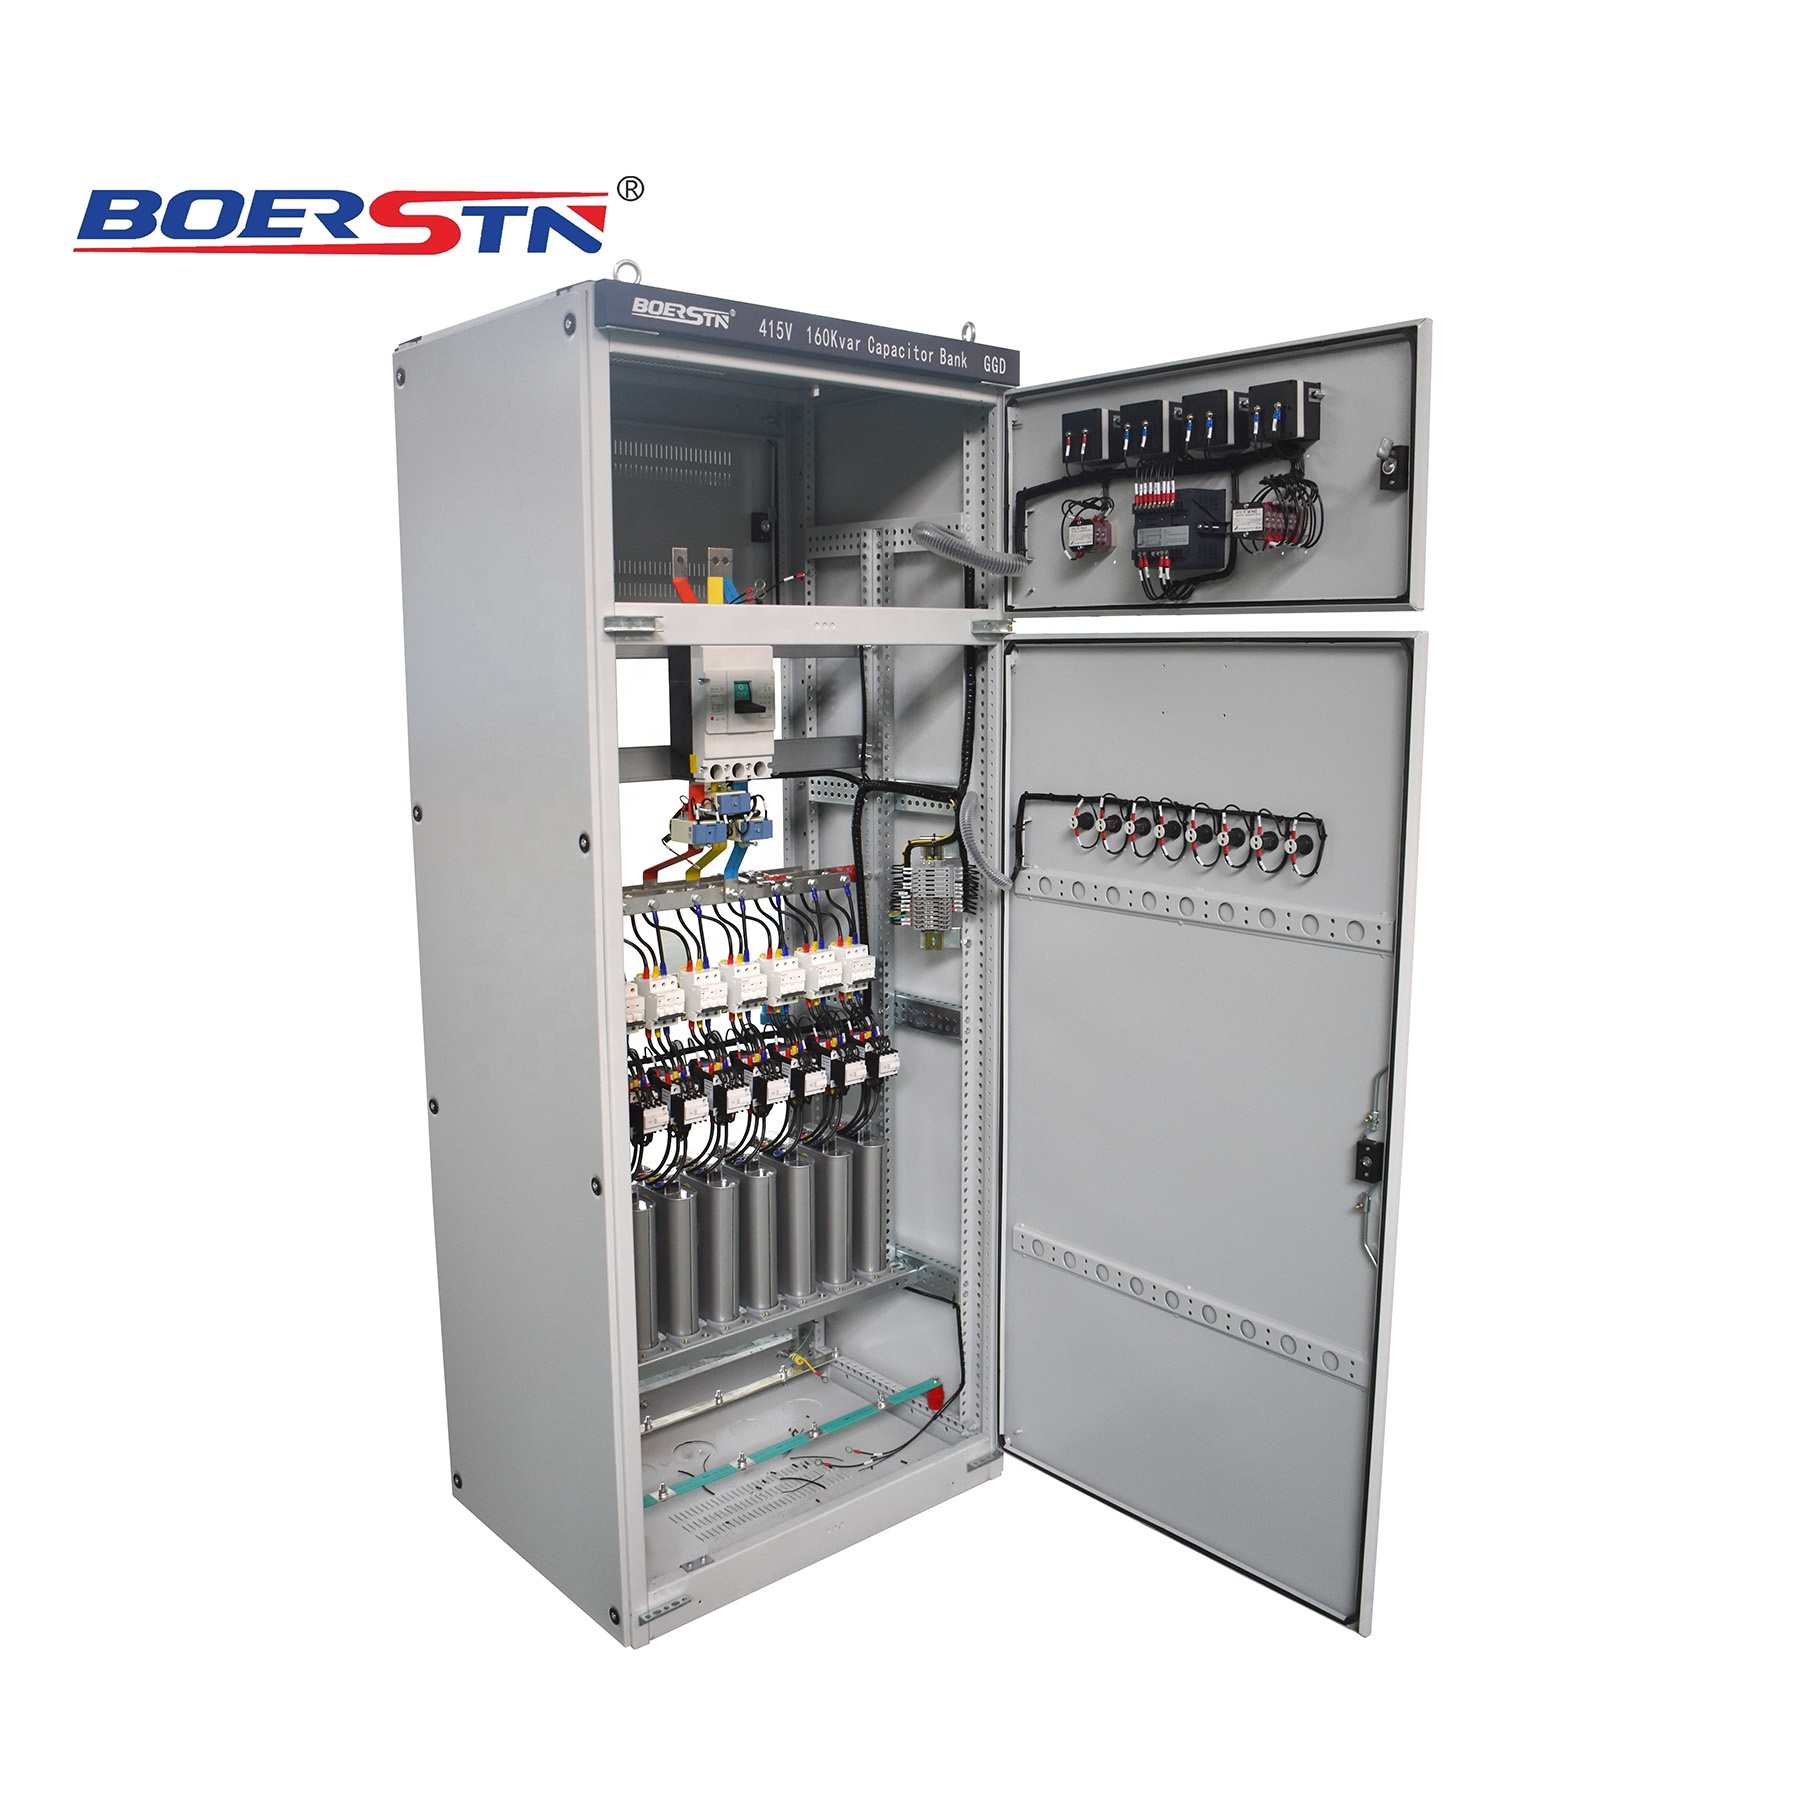 Intelligent Capacitor Reactive Power Compensation Cabinet Auto Power Factor Improver Apfi Switchboard Panel View Capacitor Bank Panel Boerstn Product Details From Boerstn Electric Co Ltd On Alibaba Com